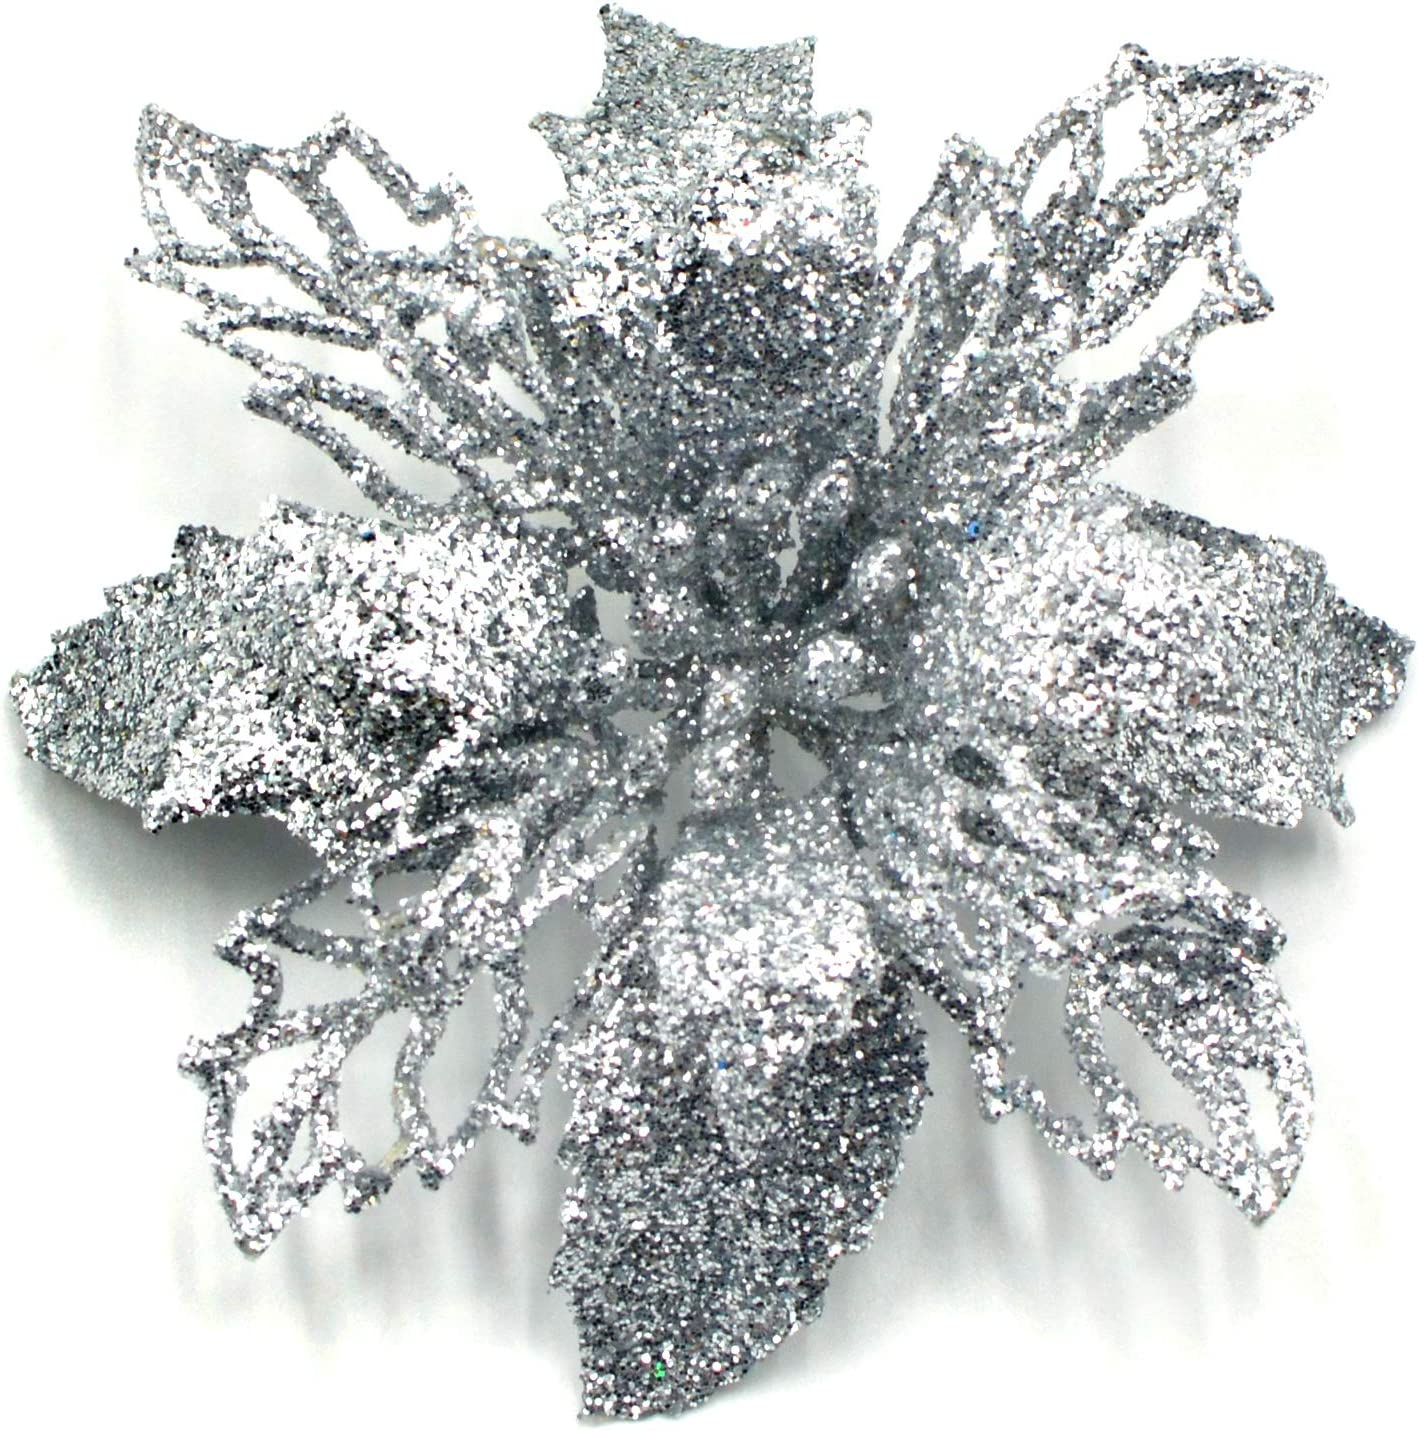 DuHouse Artificial Glitter Poinsettia Flowers Christmas Tree Wreath Ornaments for Home Kitchen Decor Pack of 6 (Silver)